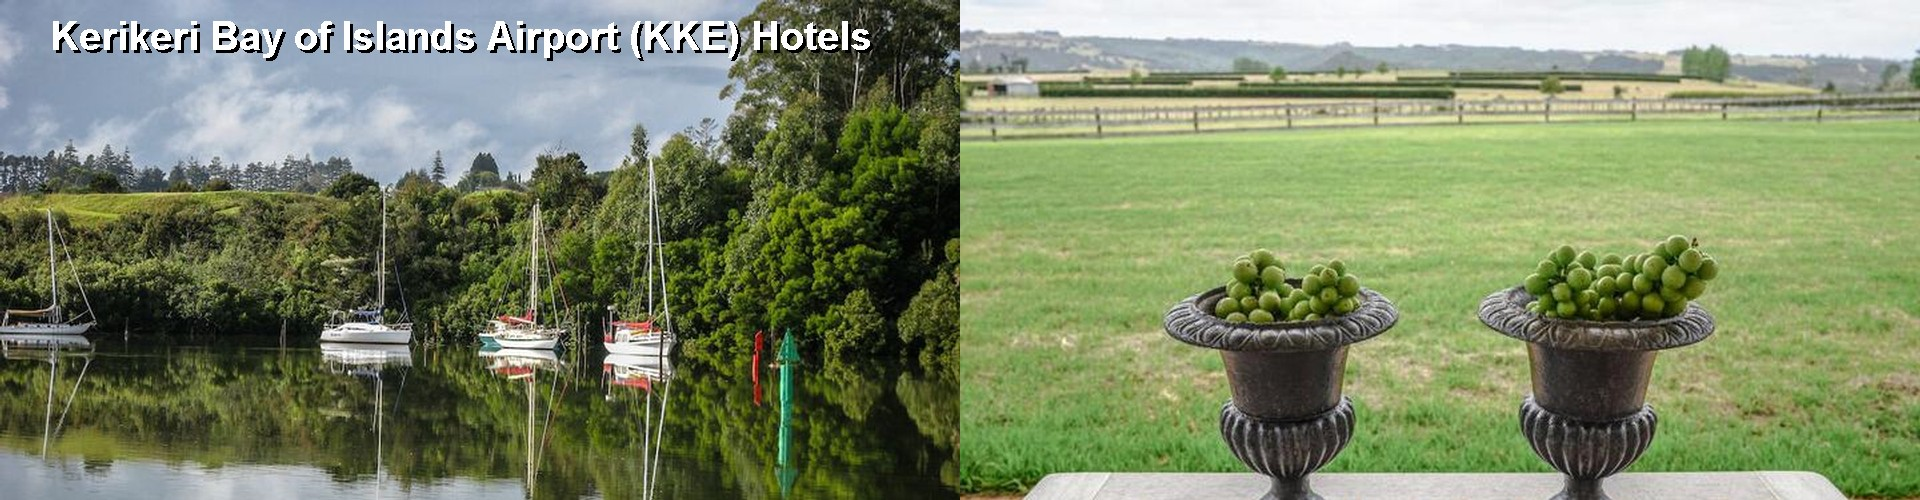 5 Best Hotels near Kerikeri Bay of Islands Airport (KKE)